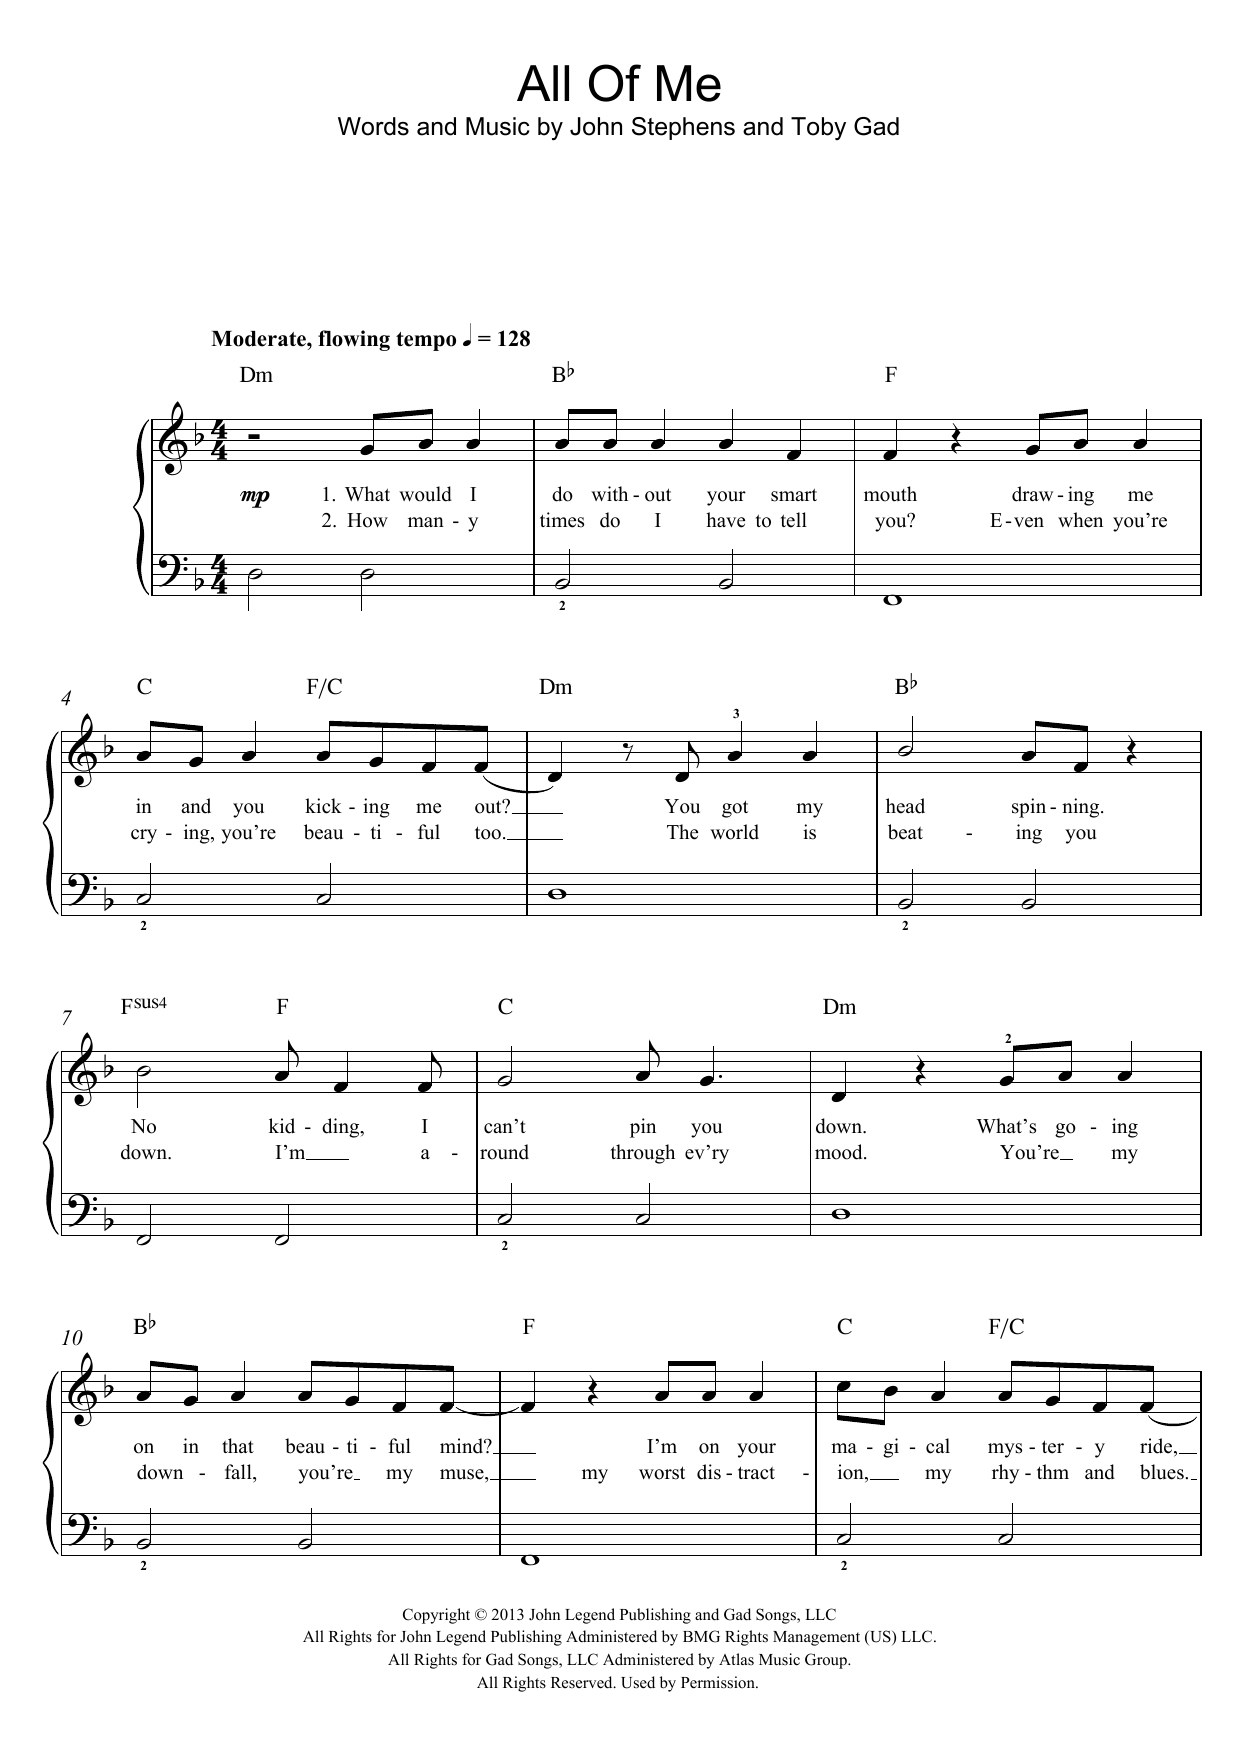 All of me sheet music direct sheet preview hexwebz Choice Image